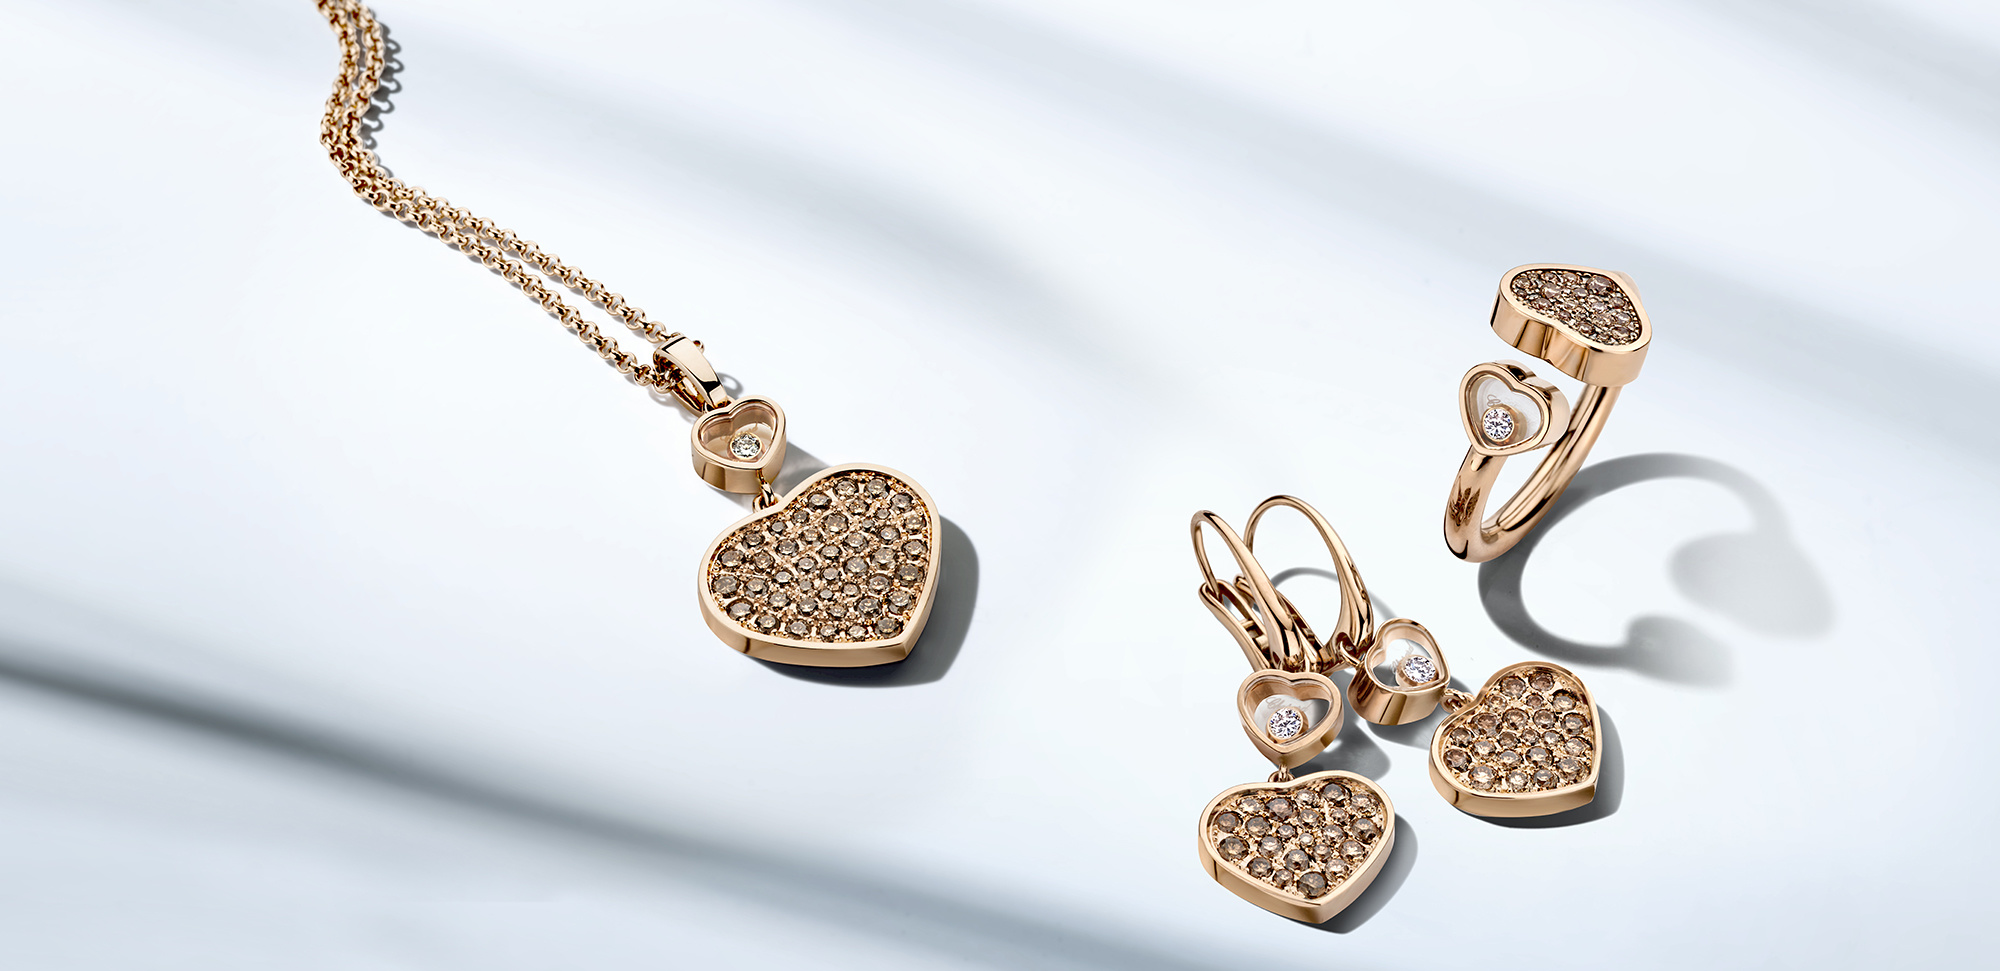 De bijzondere 'Happy Together' collectie van Chopard!